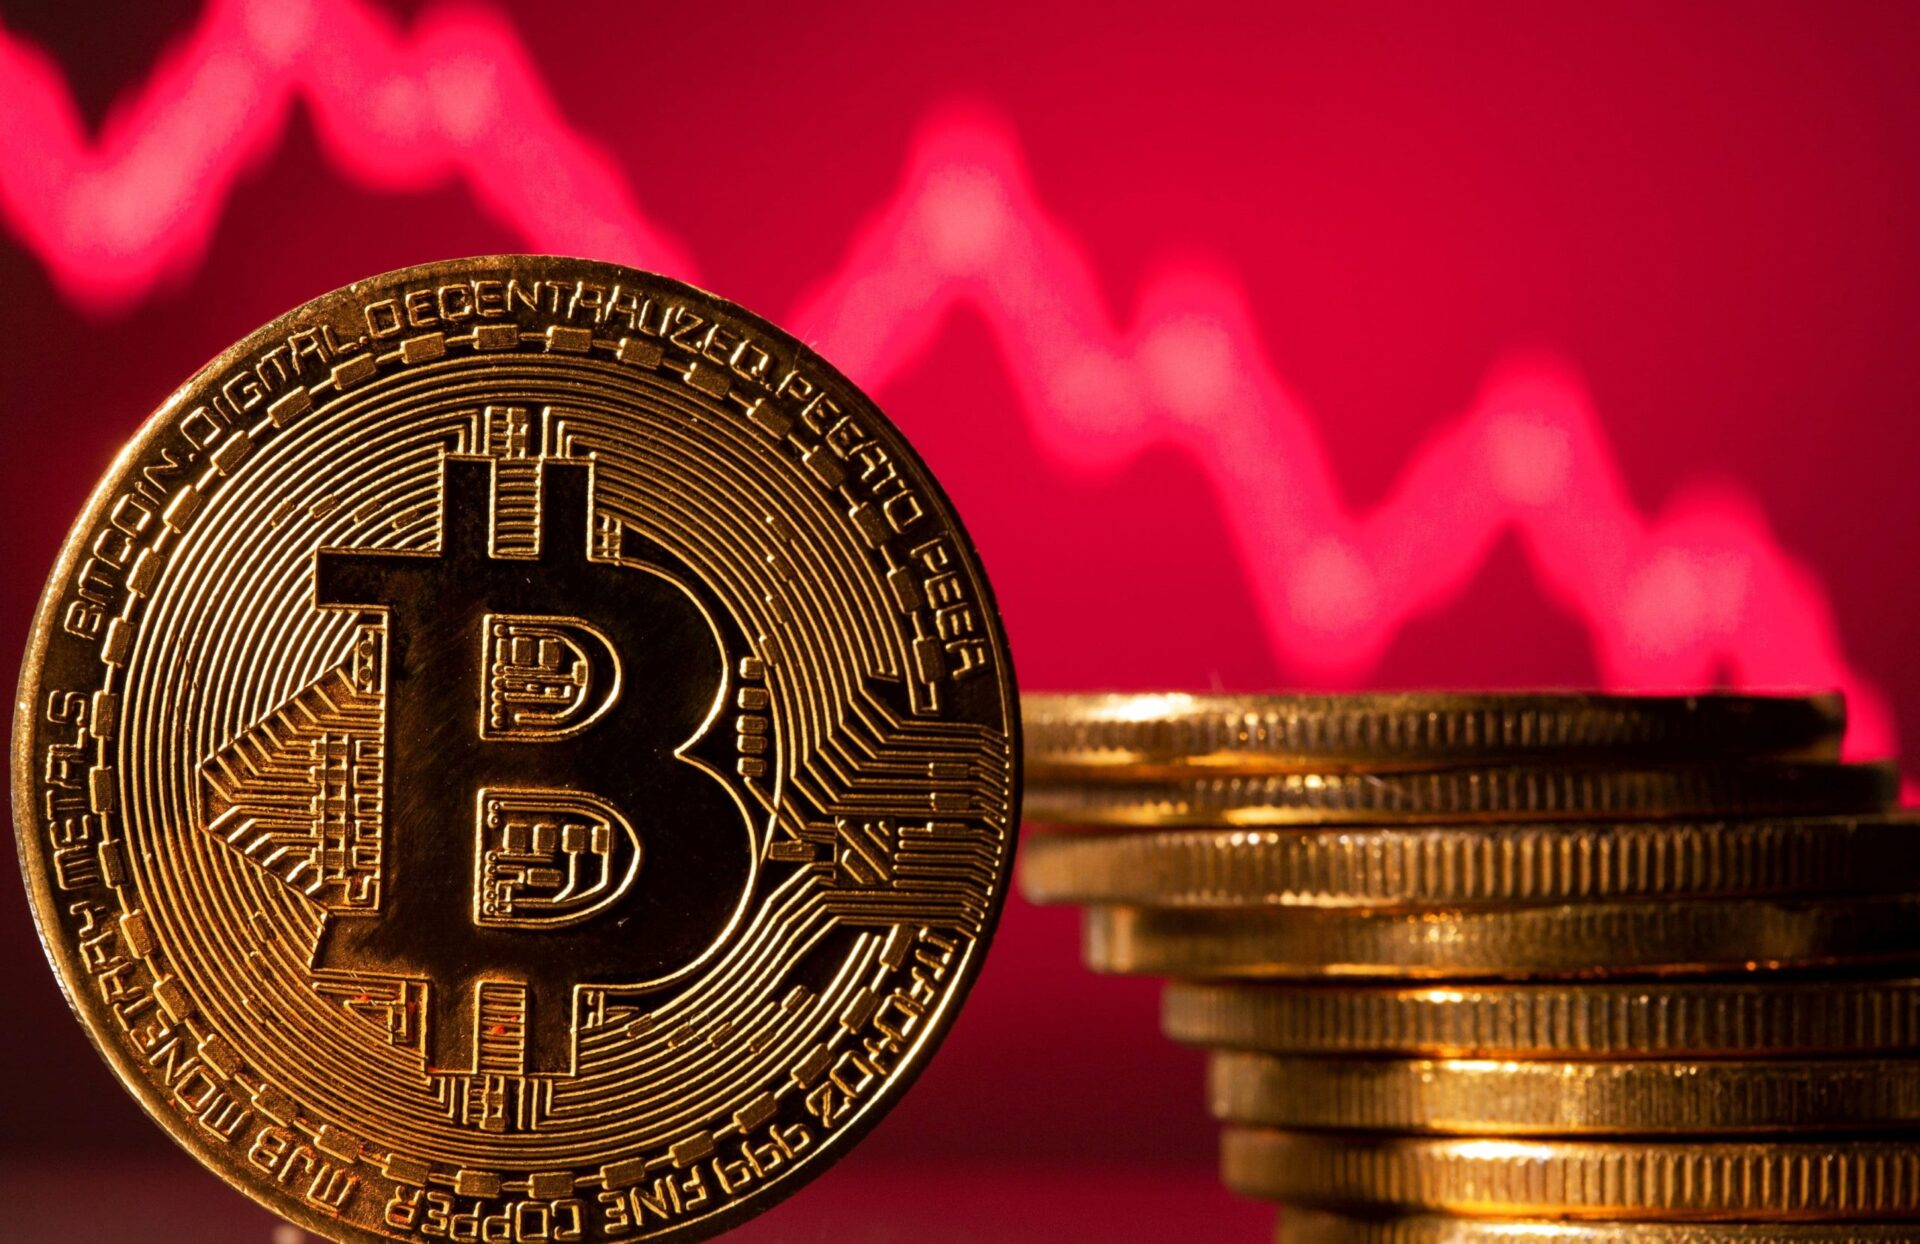 The crypto collapse: Here's what's behind bitcoin's sudden drop